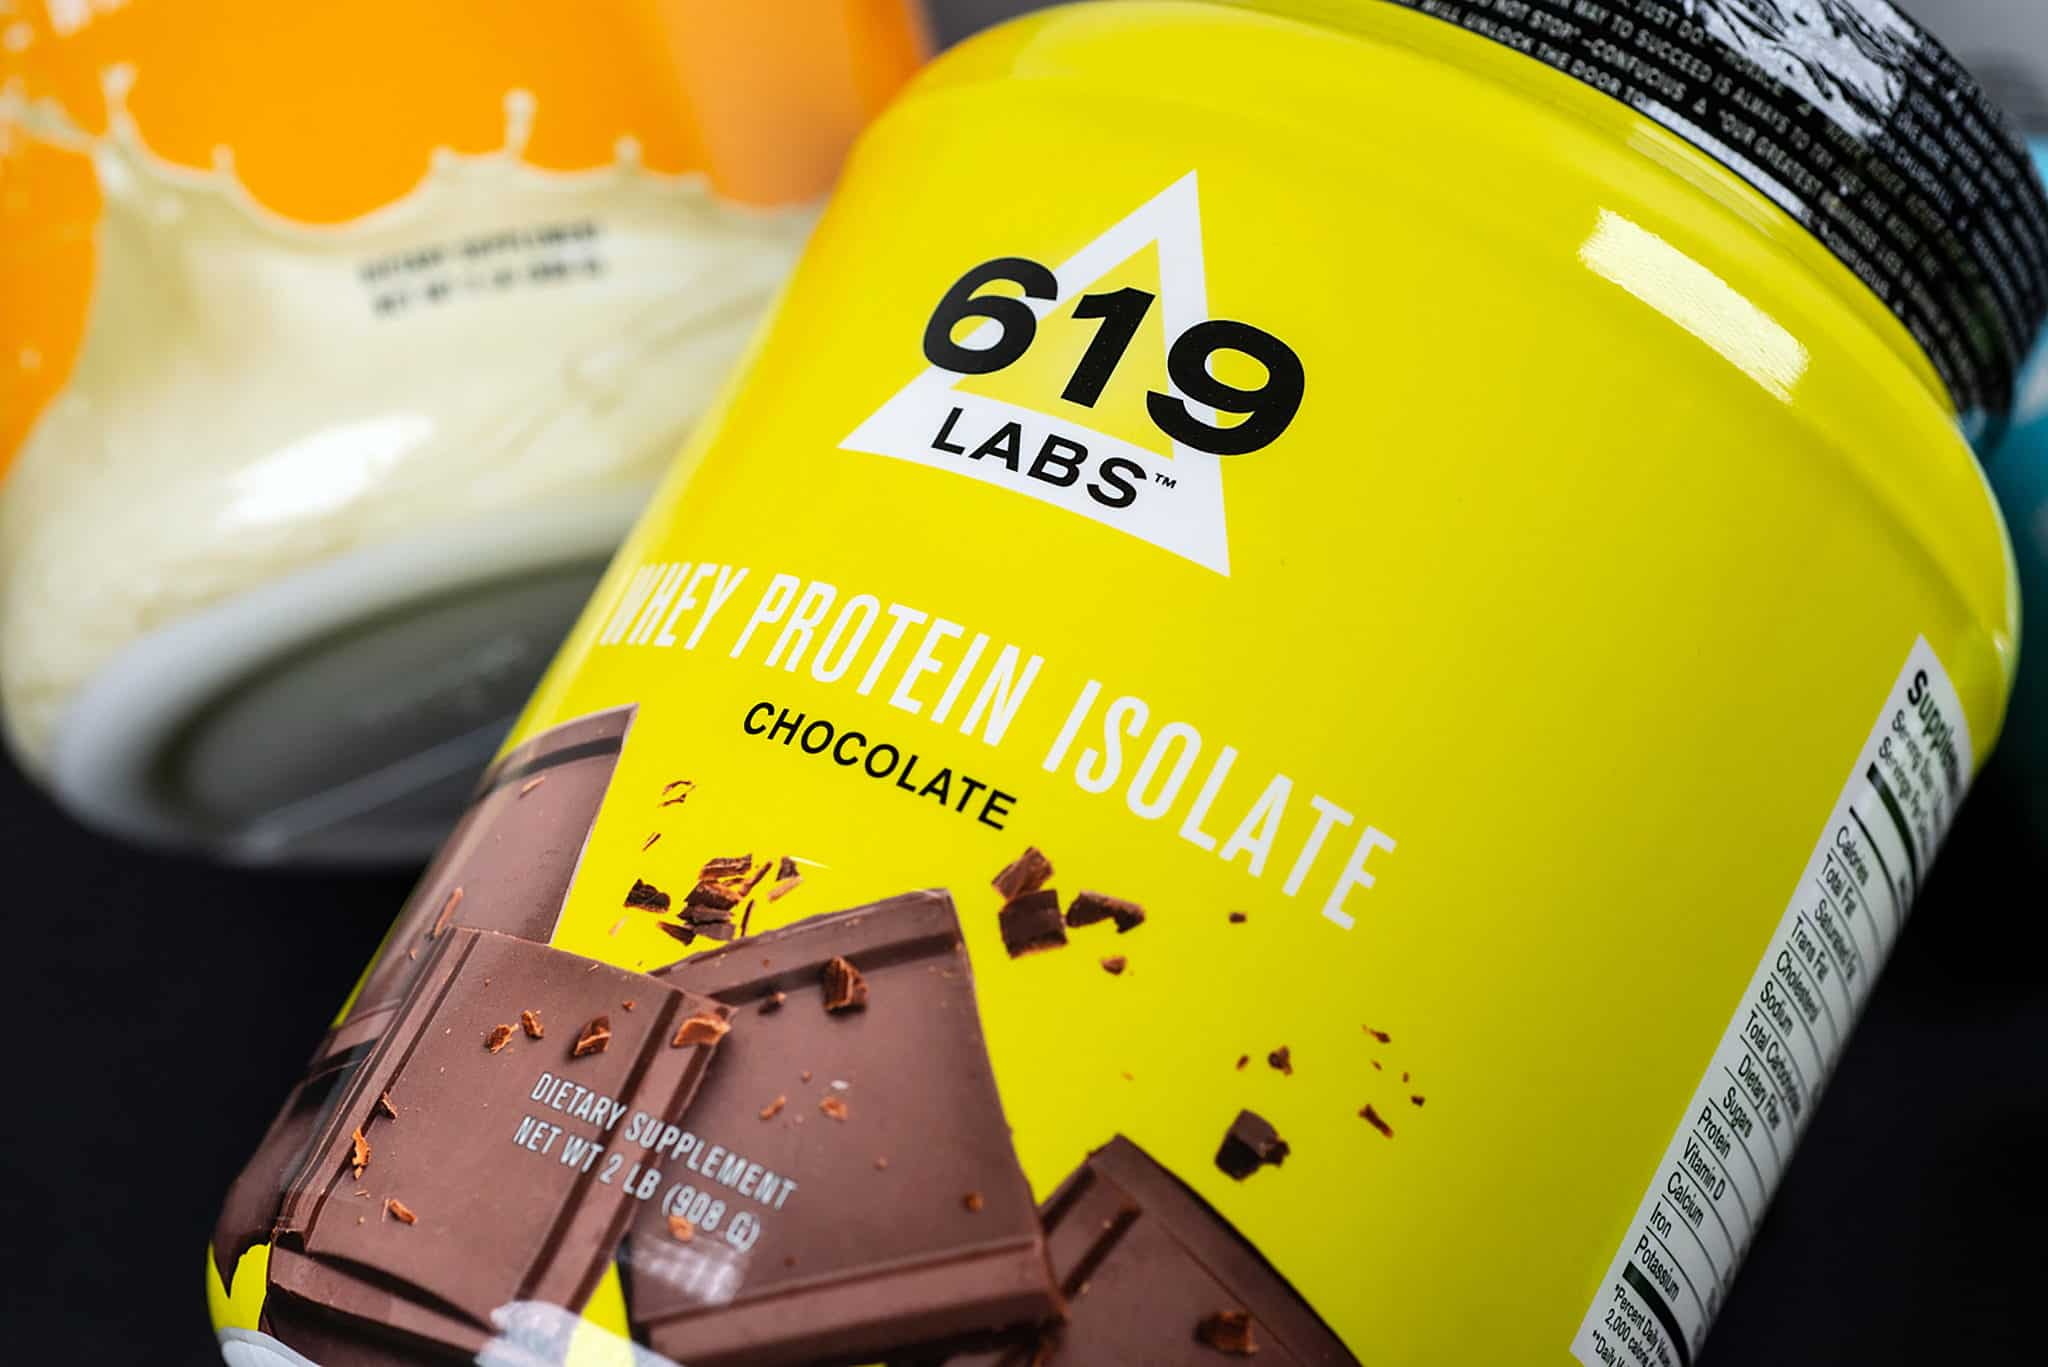 Custom packaging for 619 Labs line of nutritional and fitness supplements | Designed by Field of Study: A branding and graphic design consultancy | Houston TX | Jennifer Blanco & John Earles